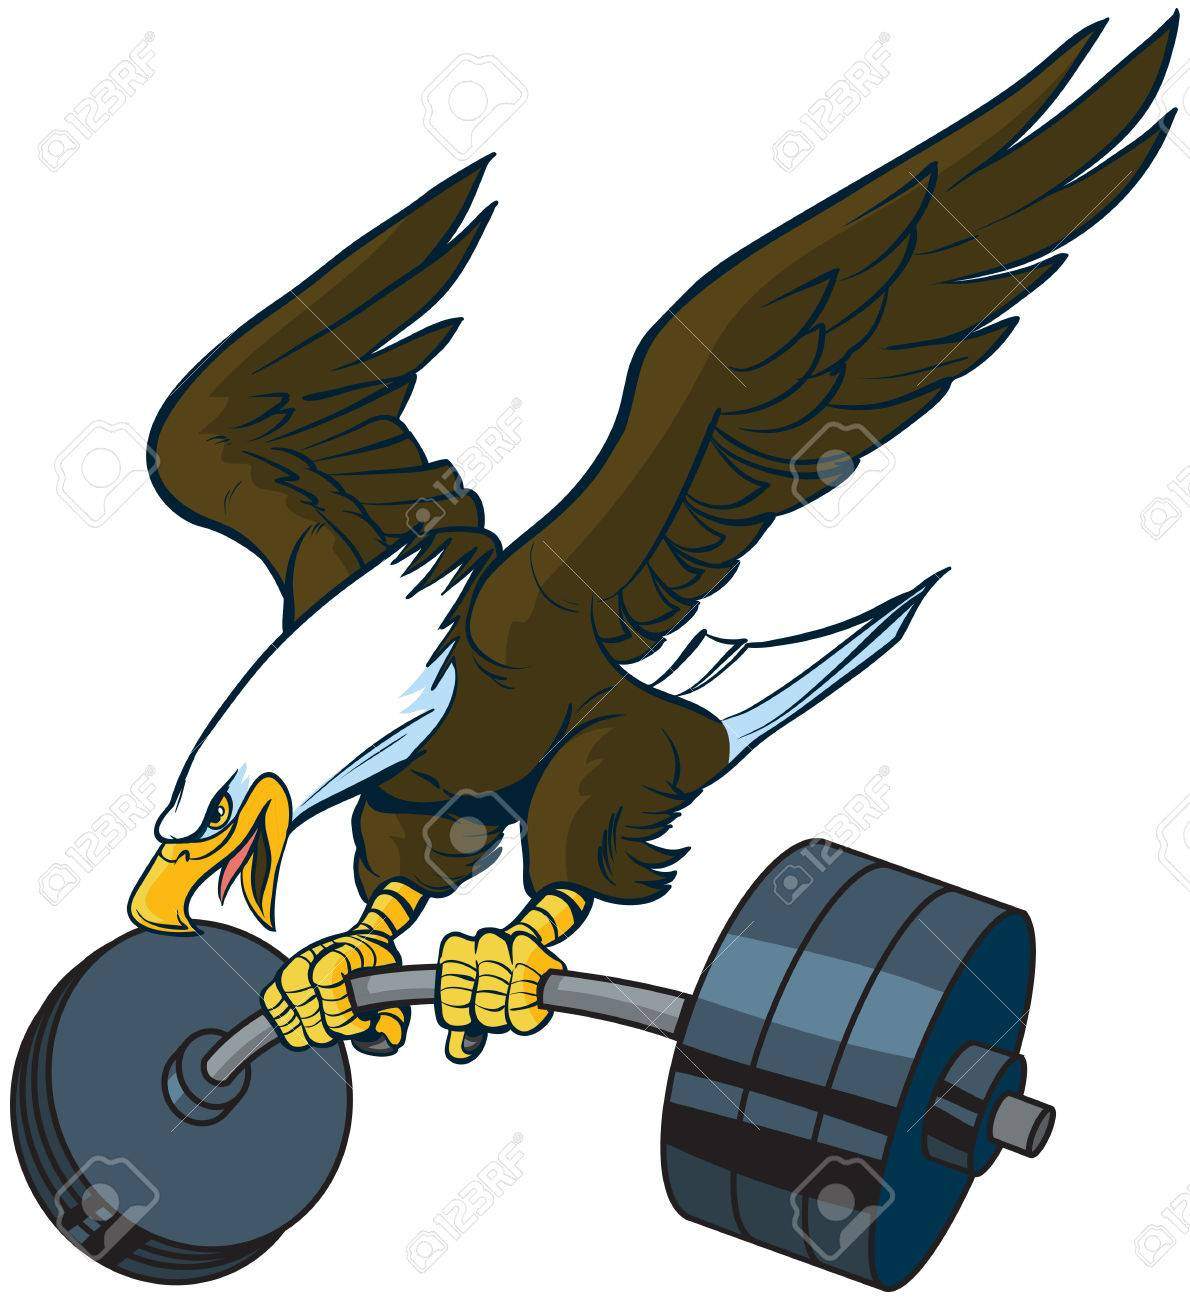 hight resolution of vector vector cartoon clip art illustration of a bald eagle mascot diving or swooping down with spread wings and a barbell weight in its talons